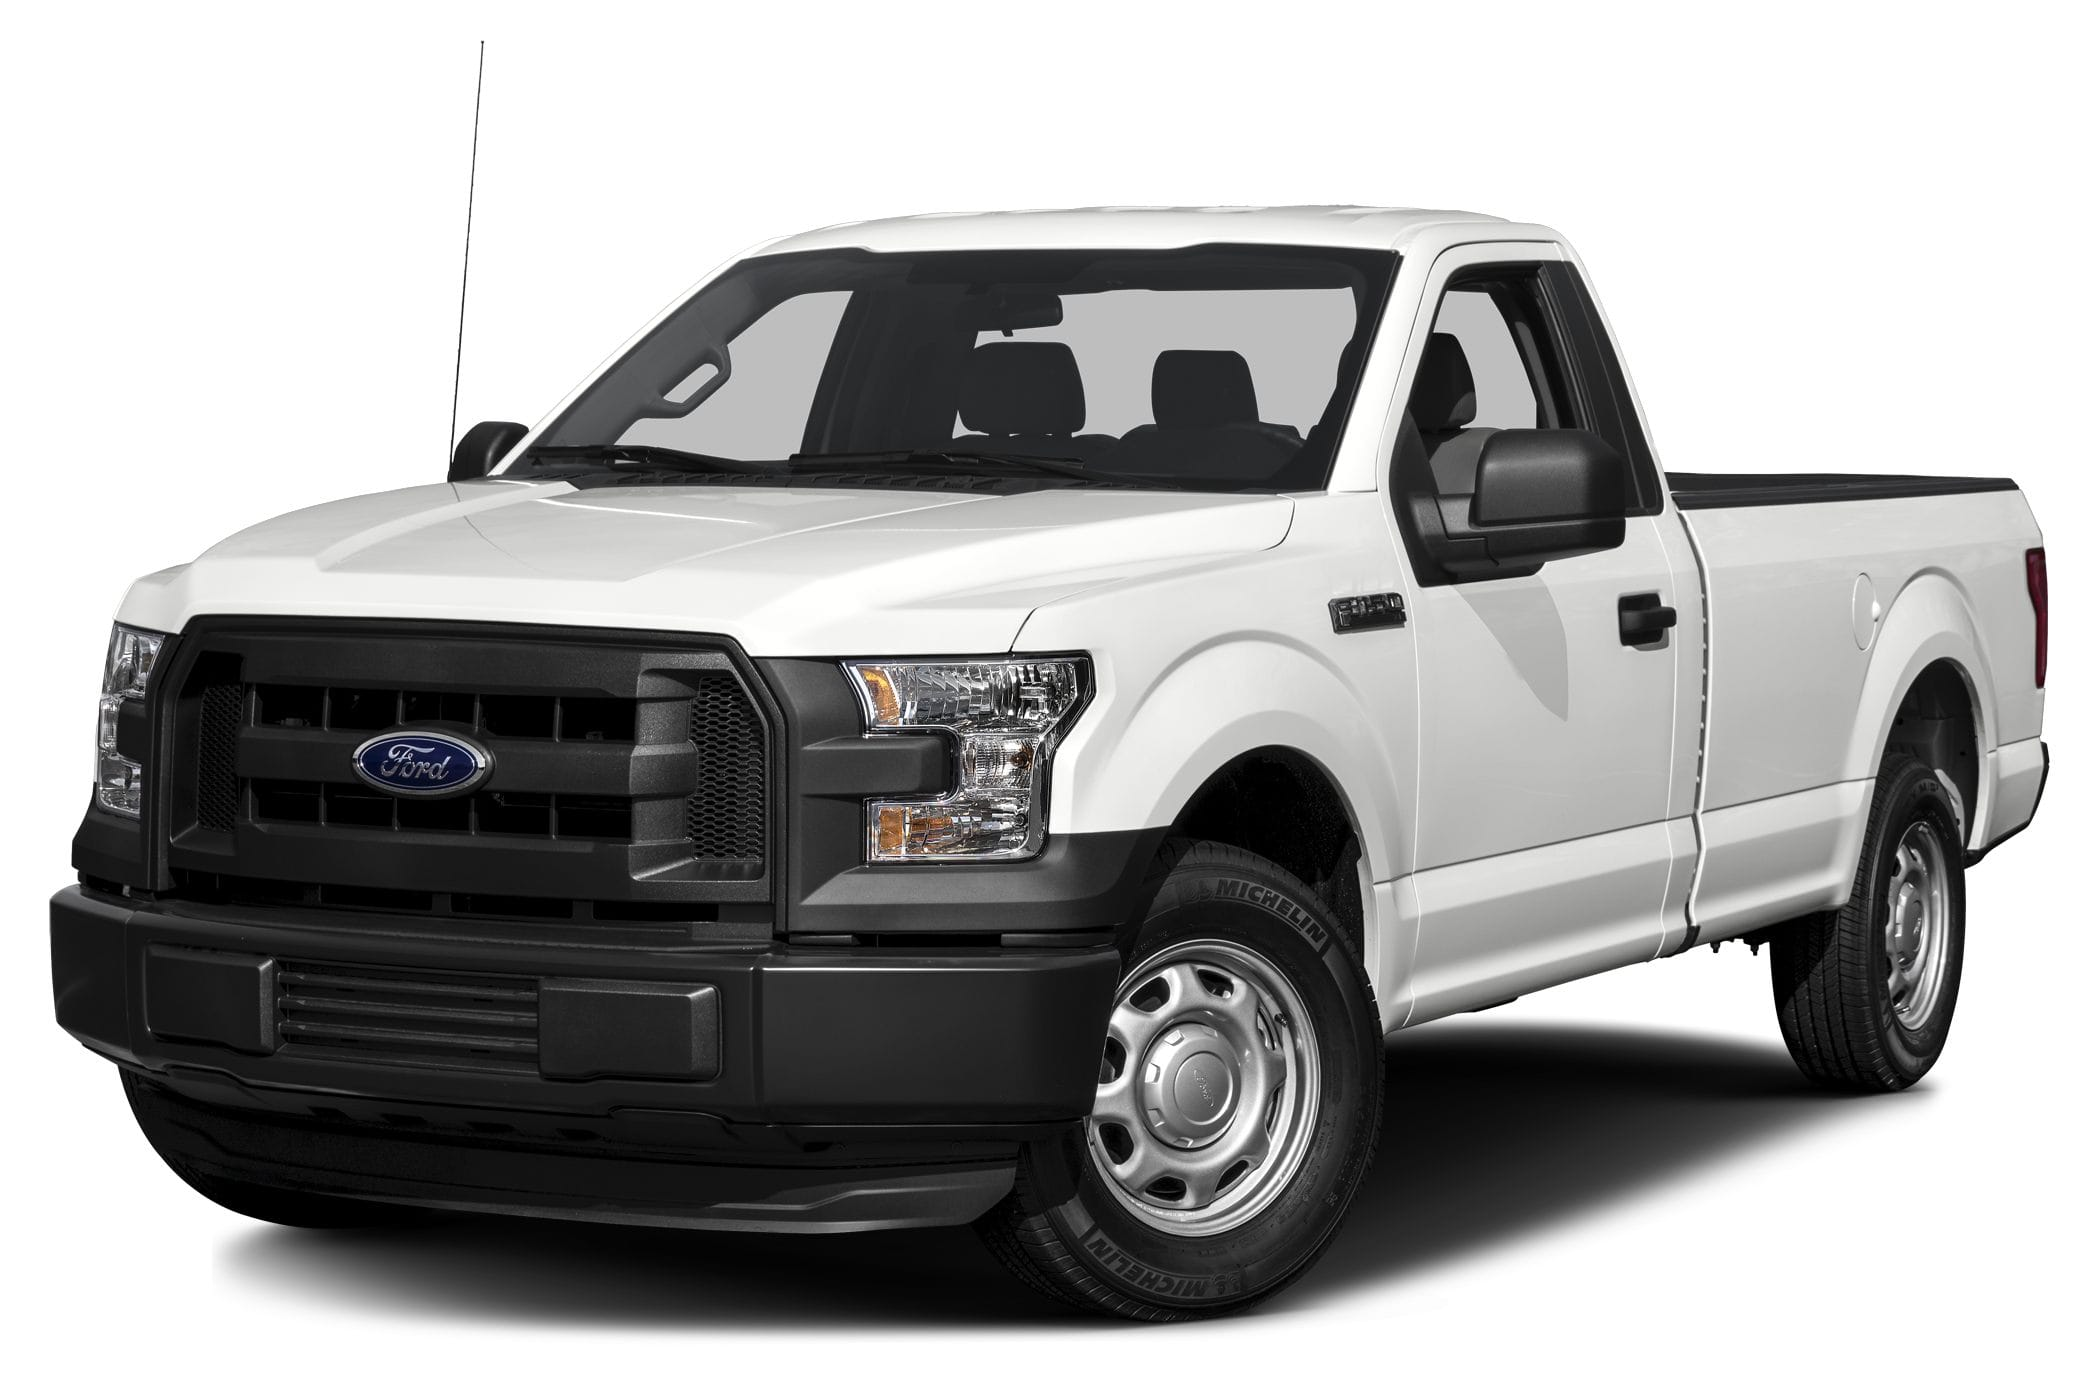 Ford F-150 Desktop wallpapers